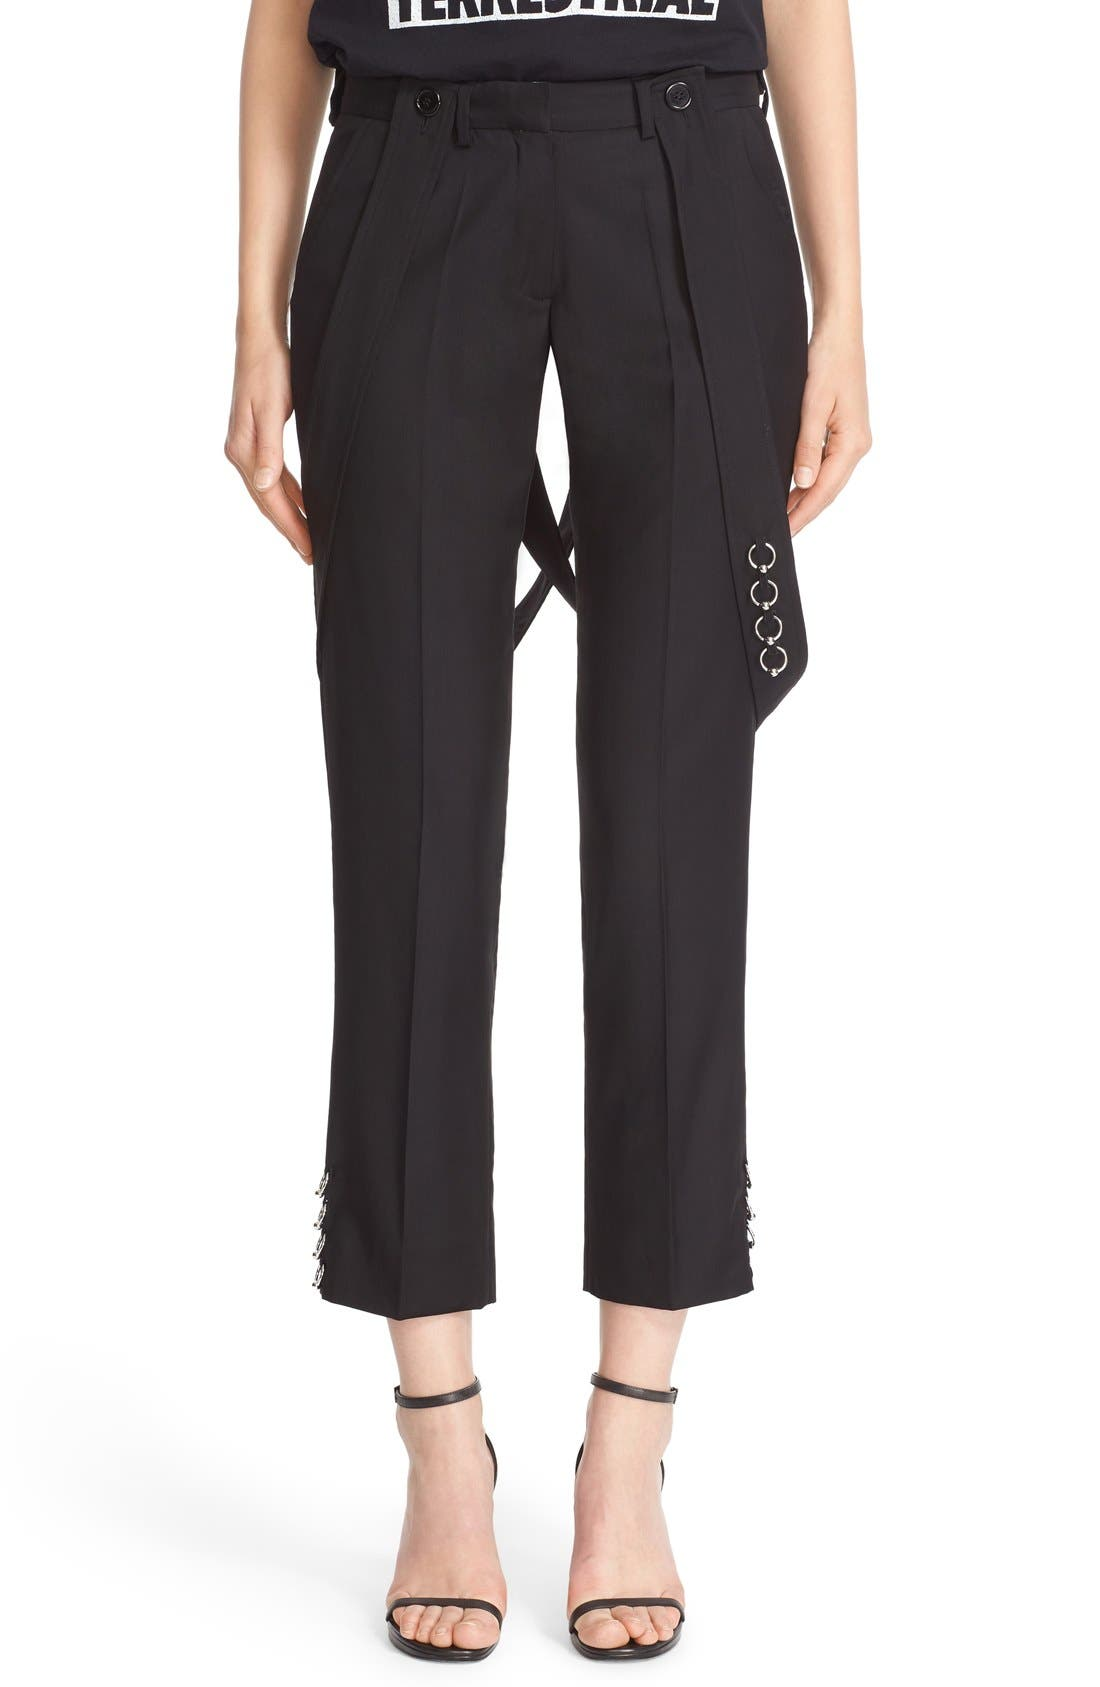 ASHLEY WILLIAMS 'Piercing' Wool Ankle Pants with Detachable Suspenders, Main, color, 001